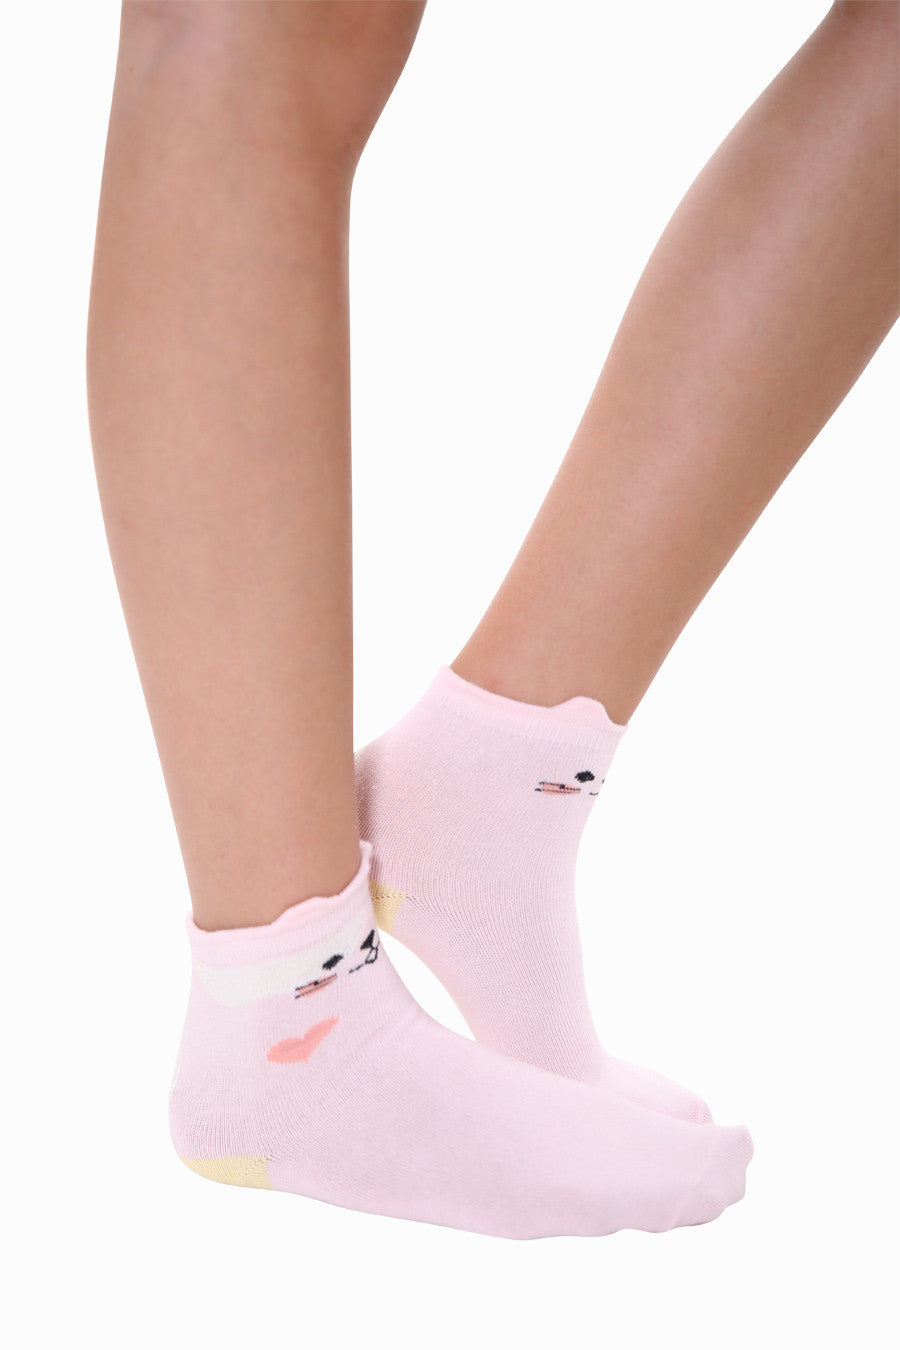 🎈Cat Socks In Light Pink🎈